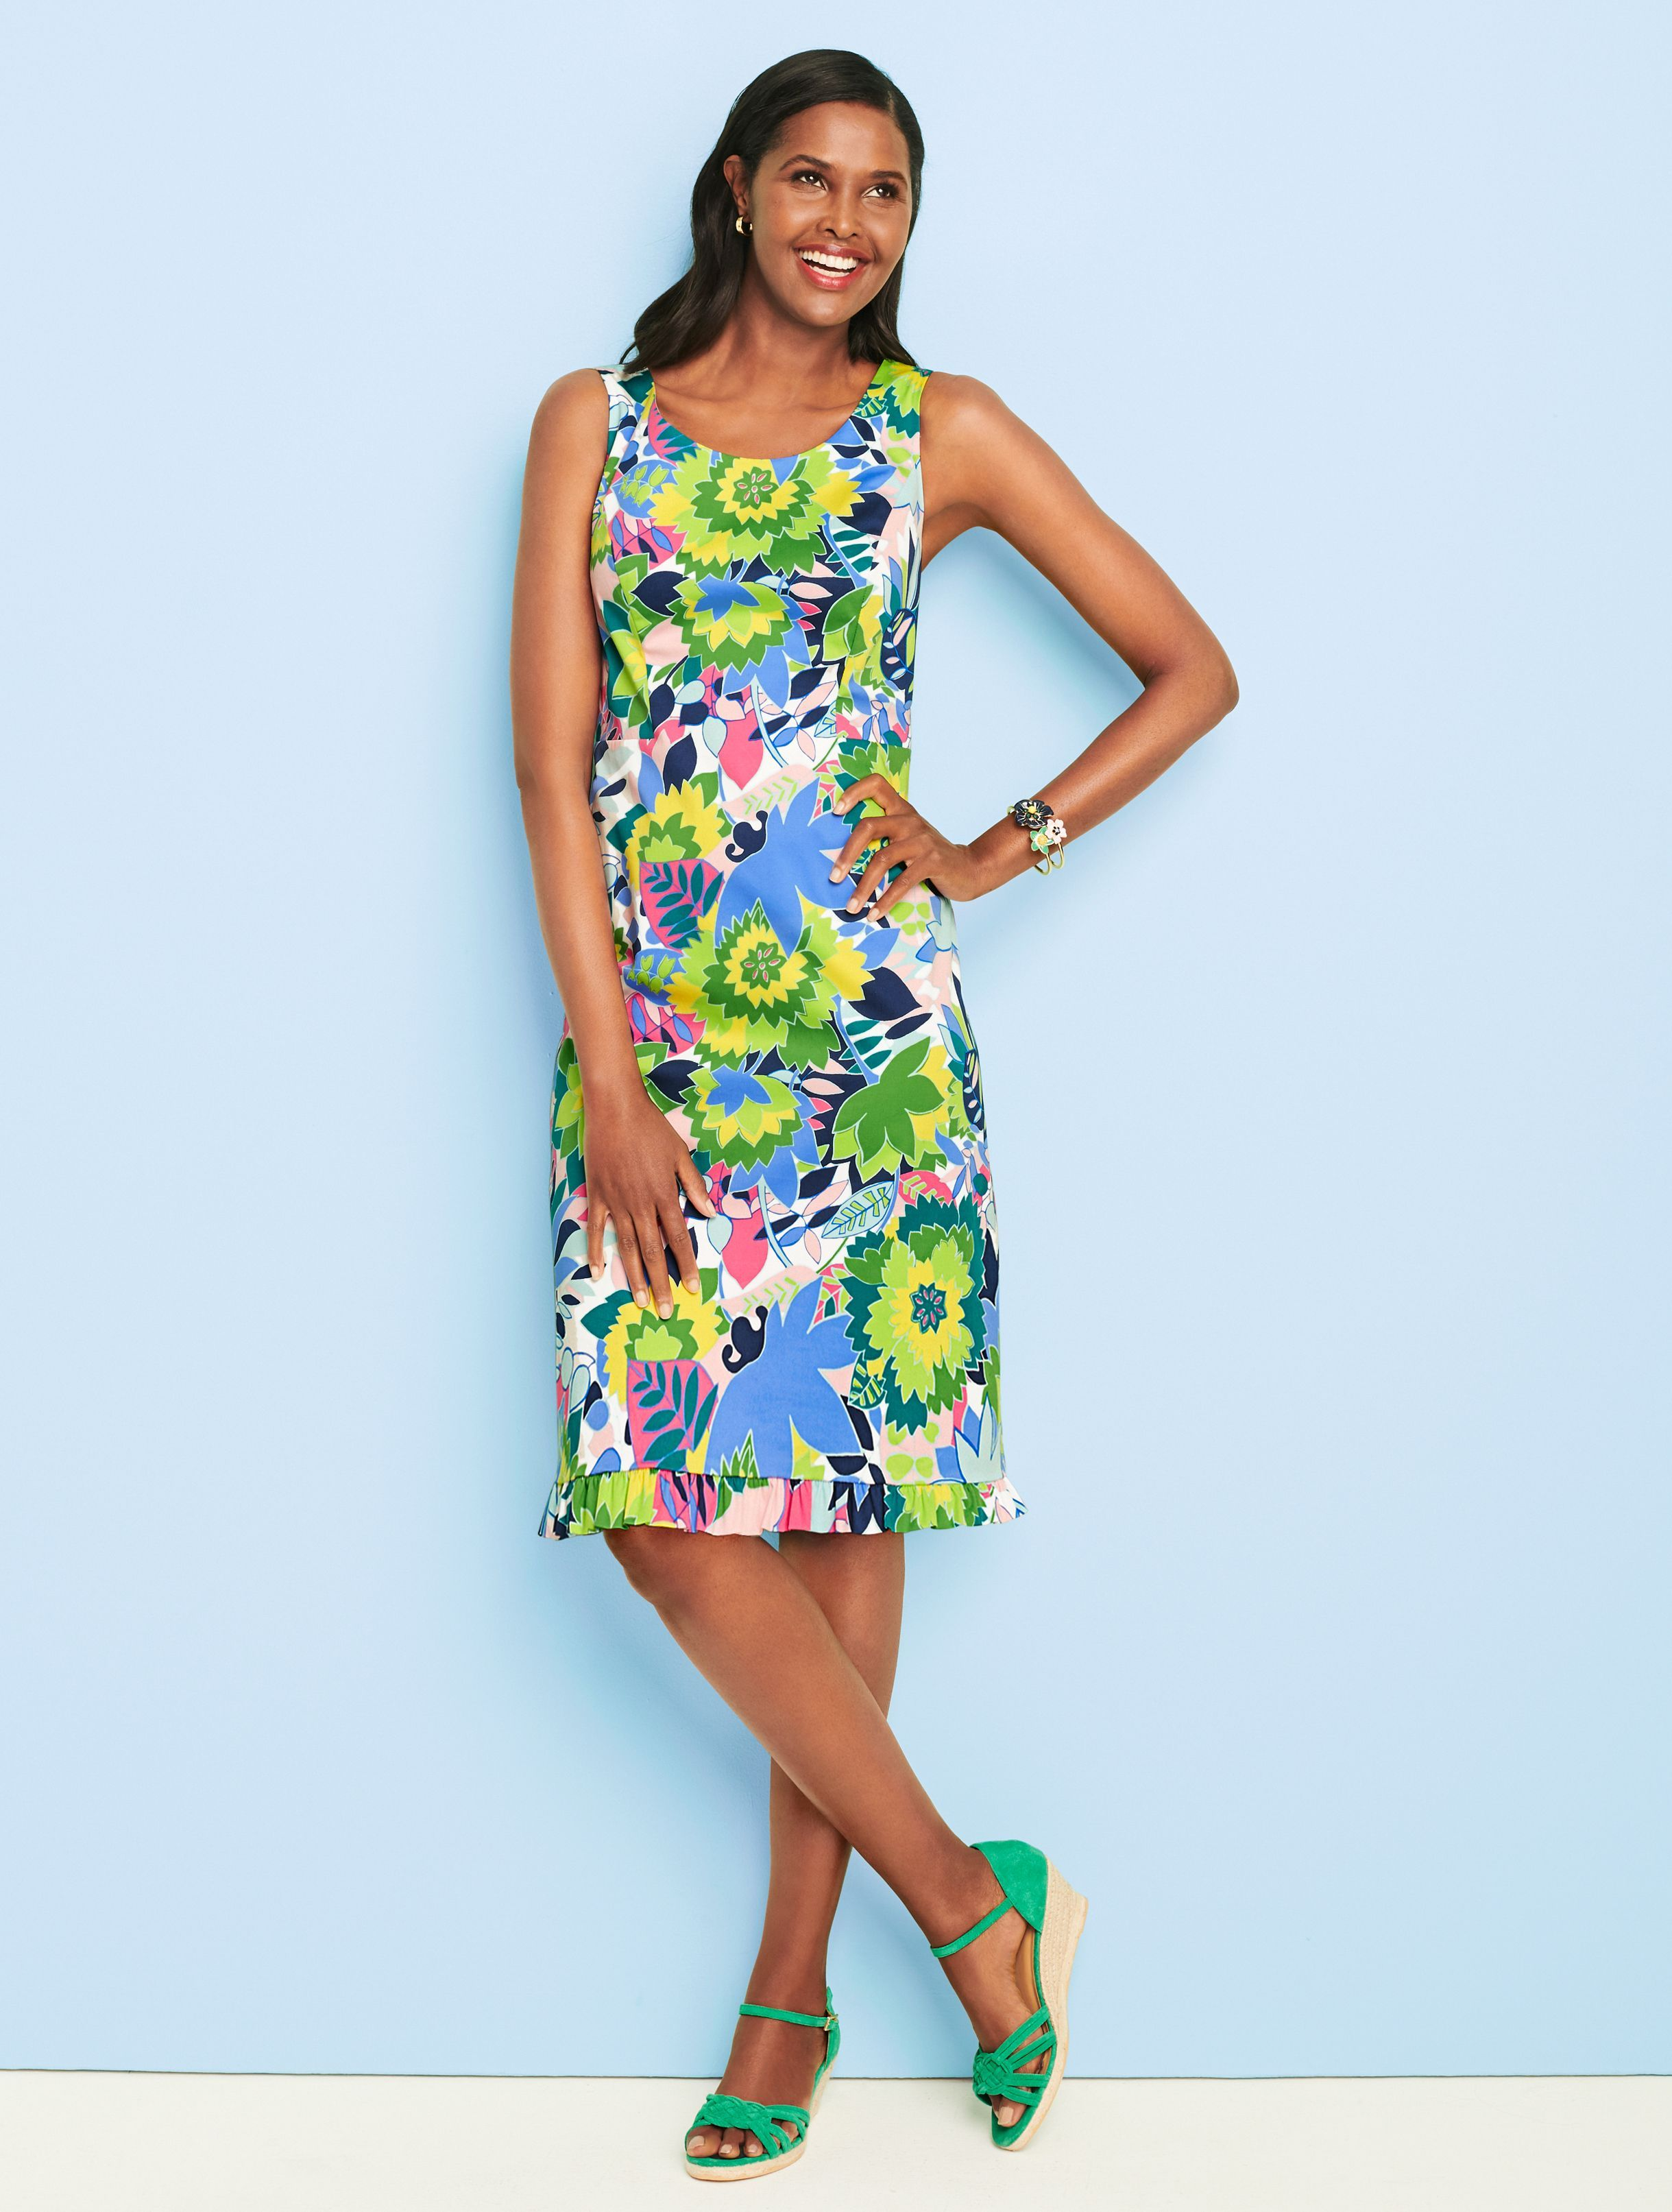 The Vibrant Palette And Soft Ruffle Hem Make This Dress